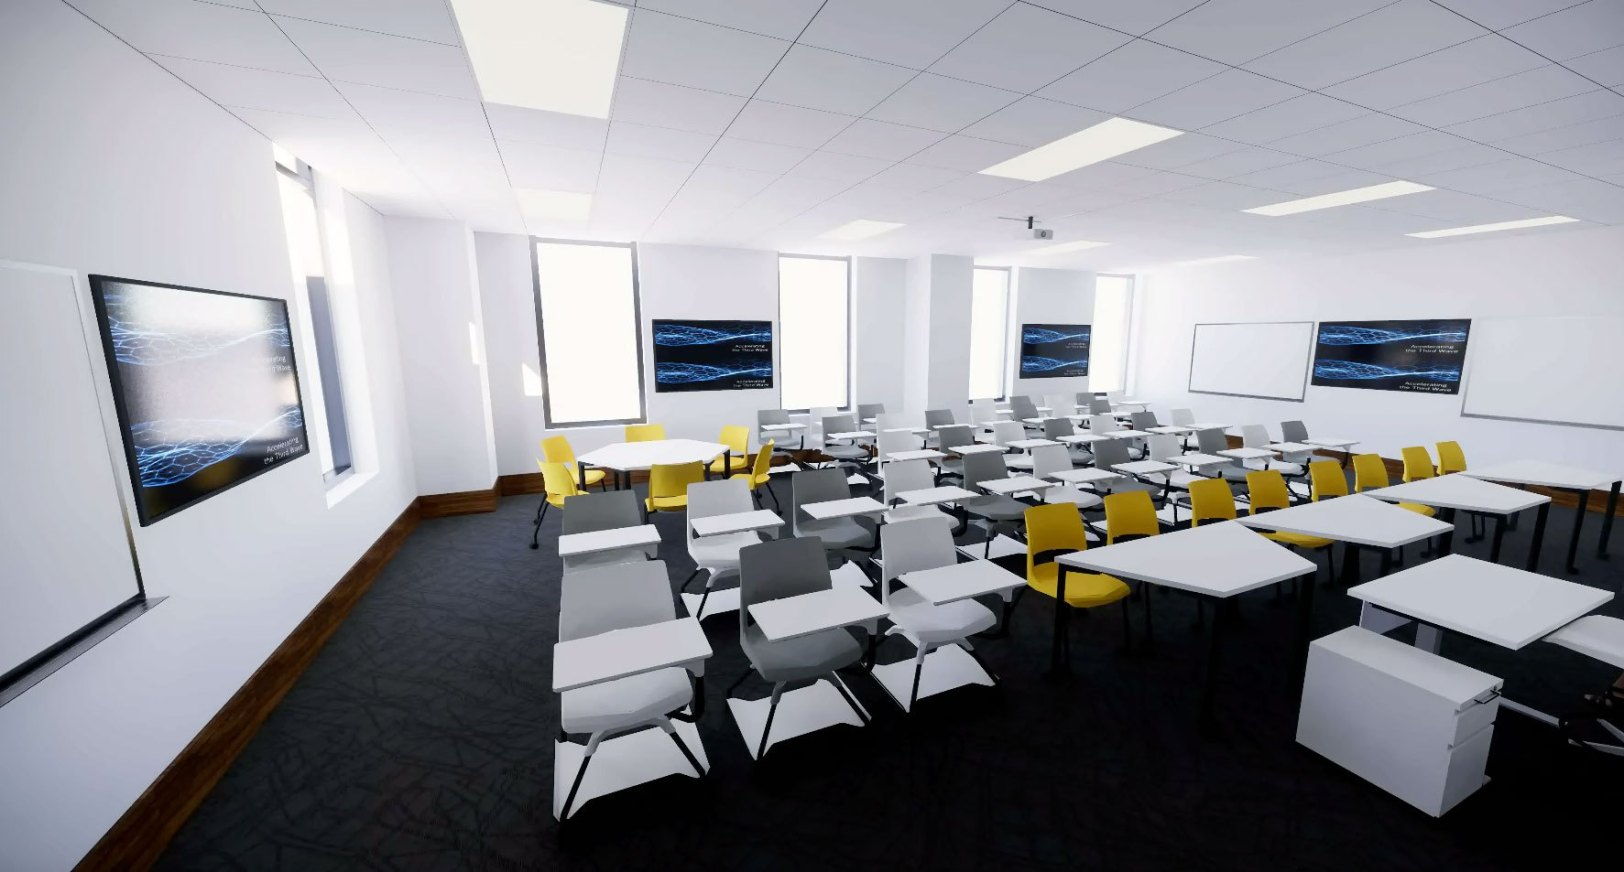 There will be multiple whiteboards throughout the room.